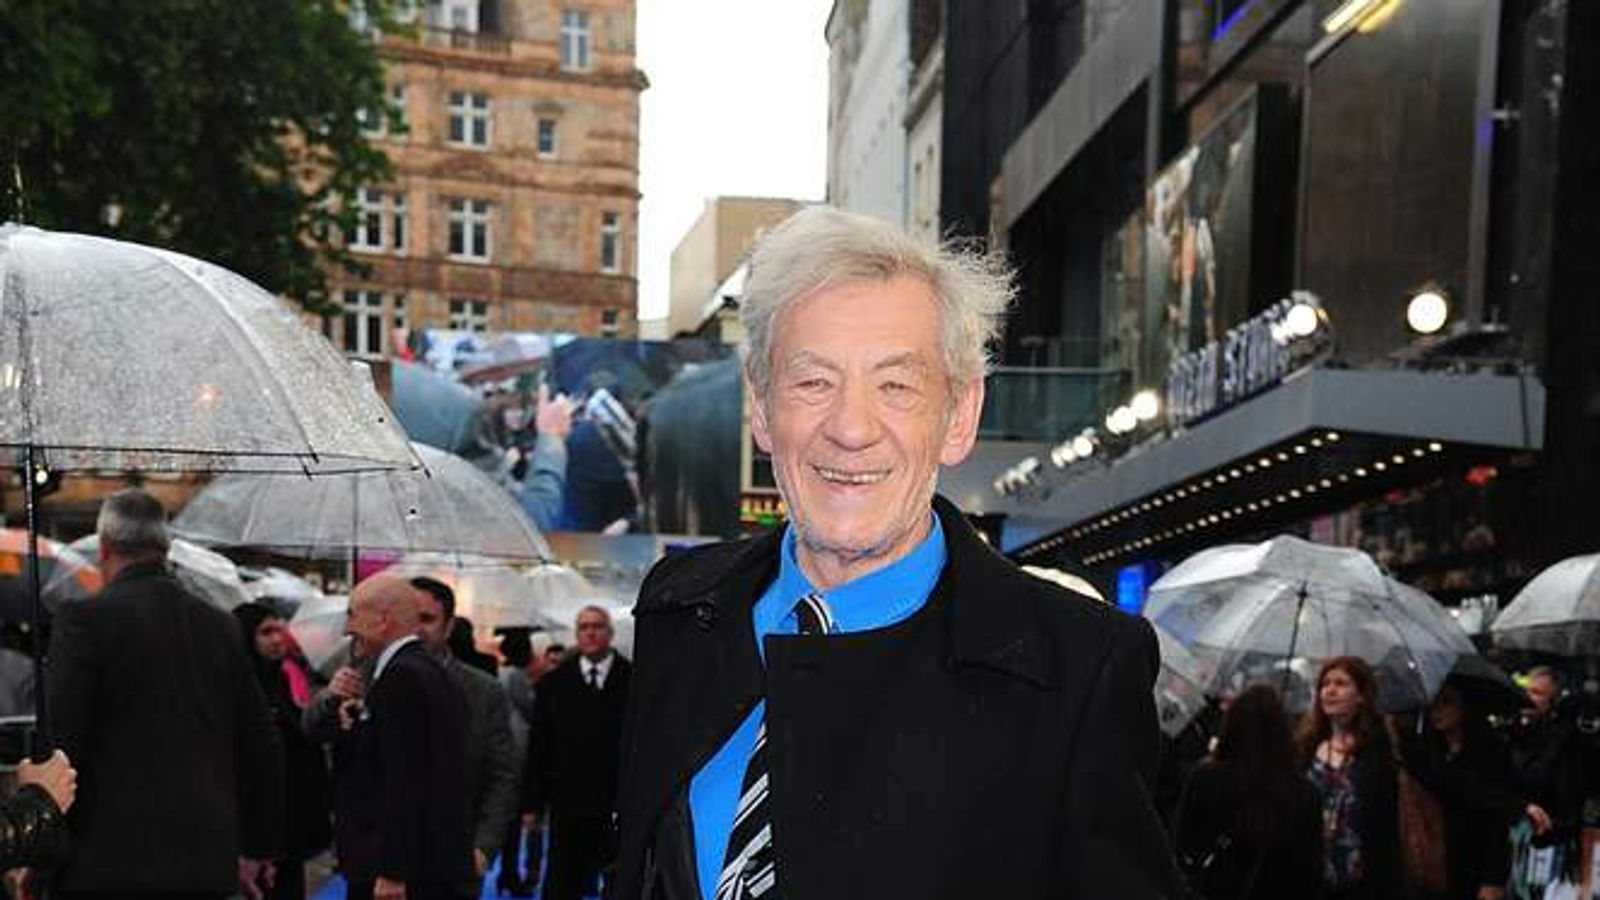 Sir Ian McKellen at X-Men: Days of Future Past Premiere in London